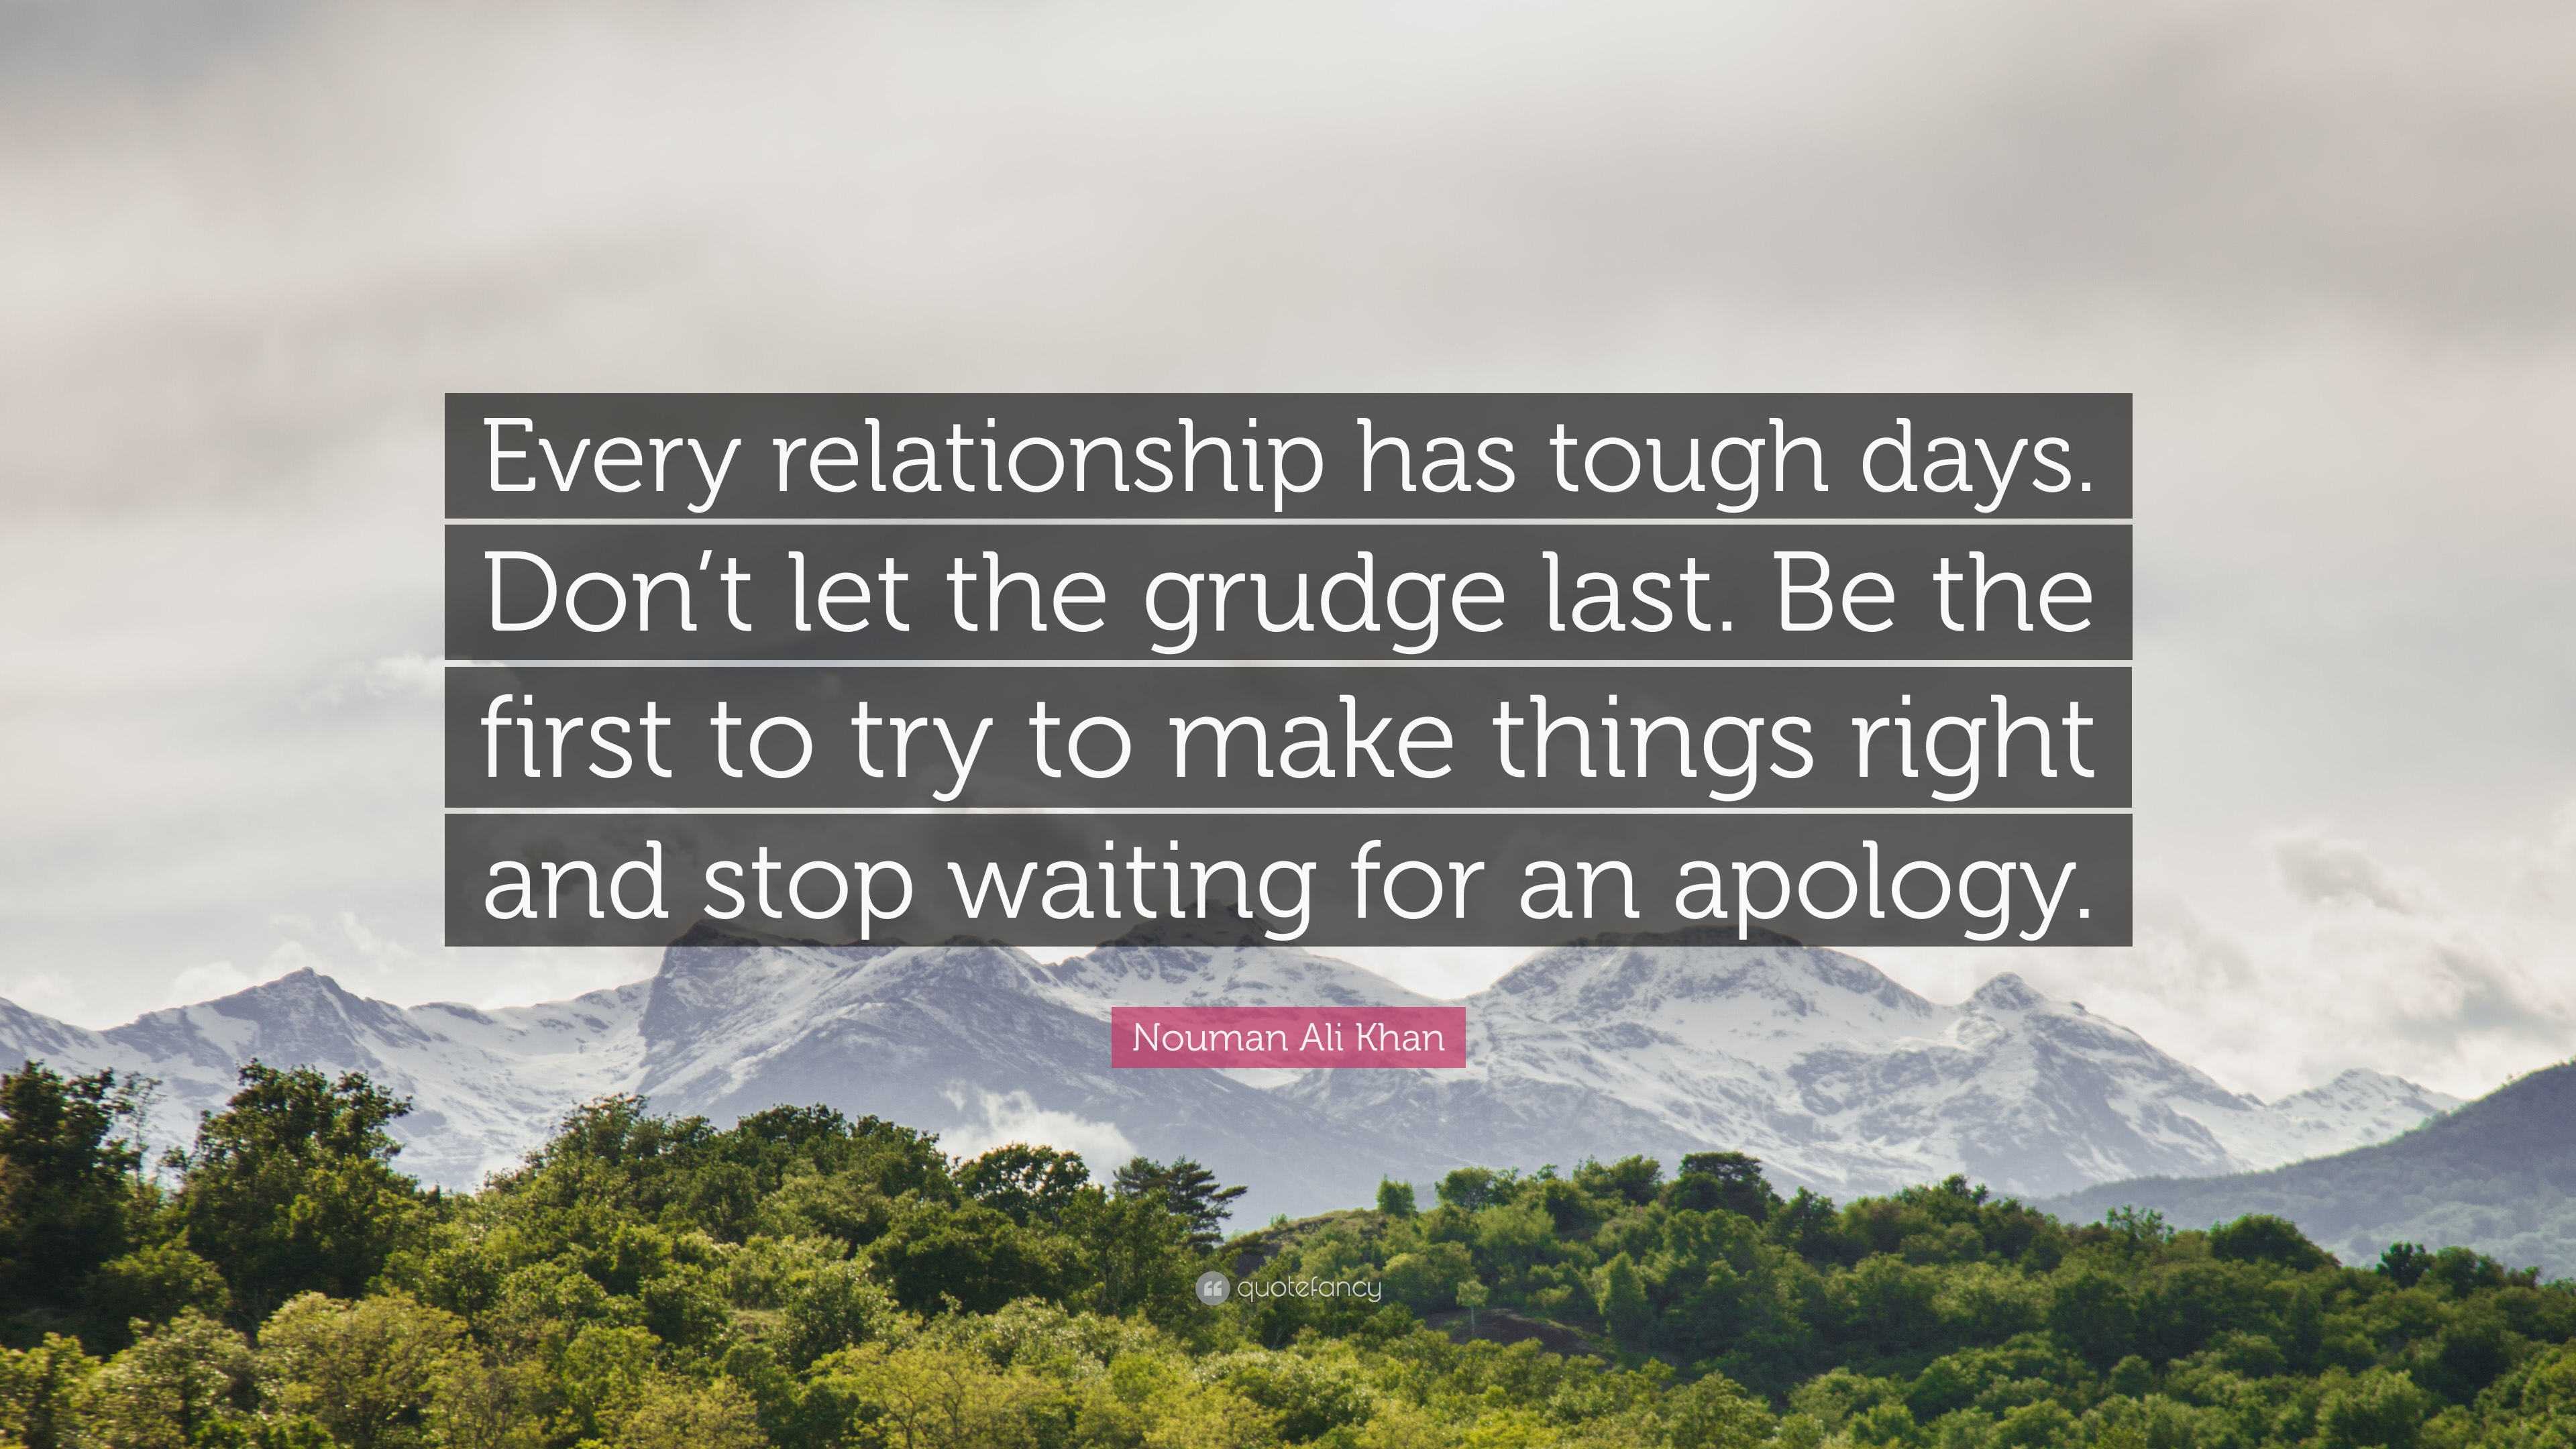 Making things right in a relationship